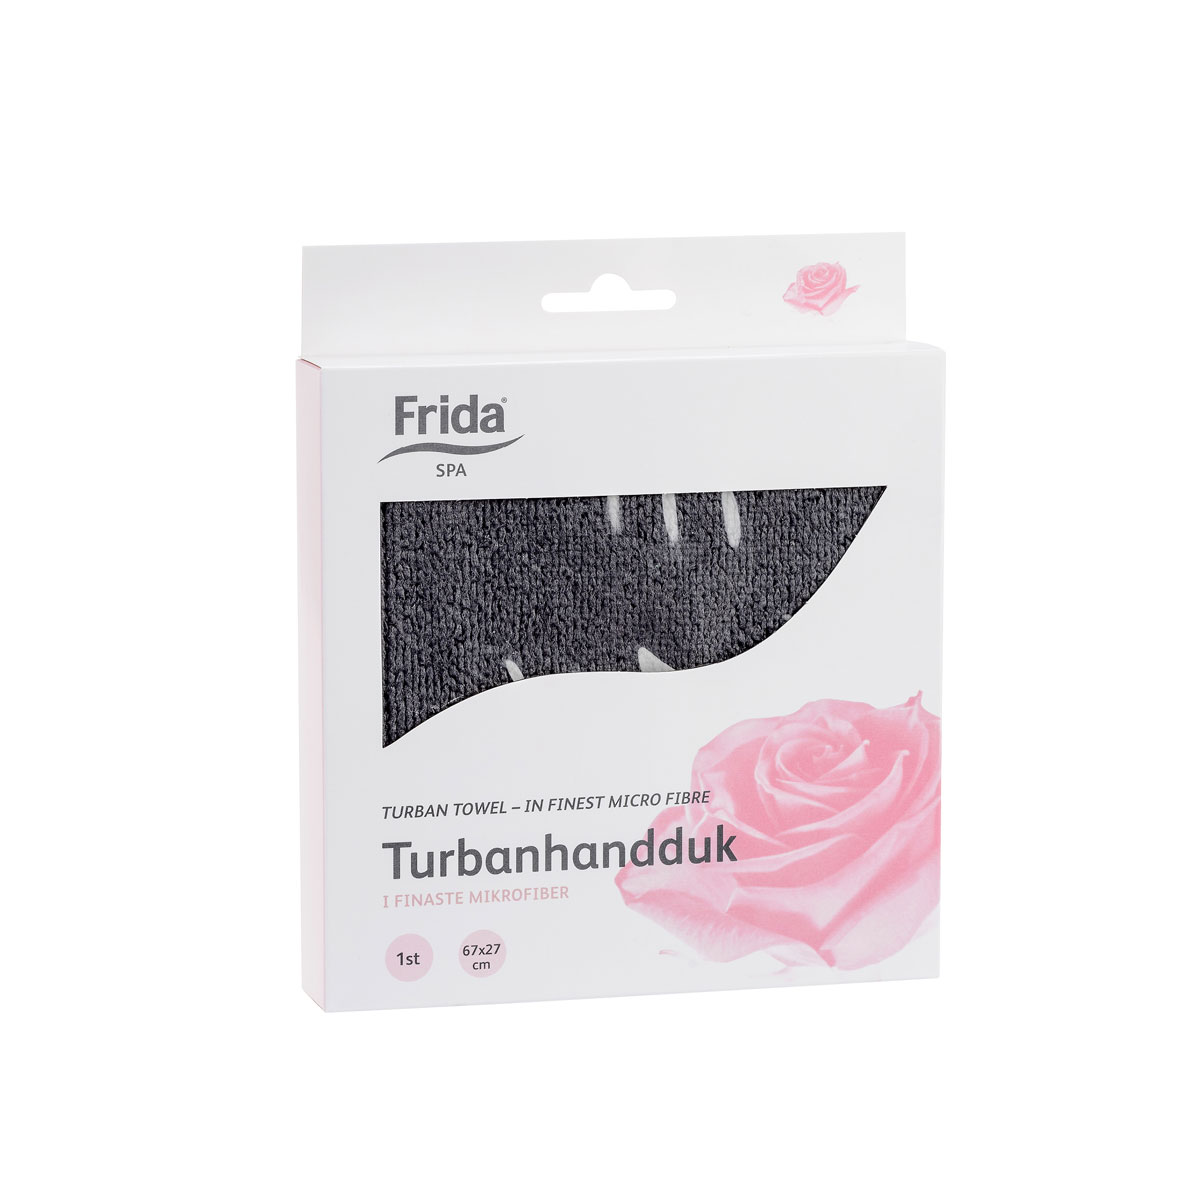 Turbanhandduk från Frida SPA